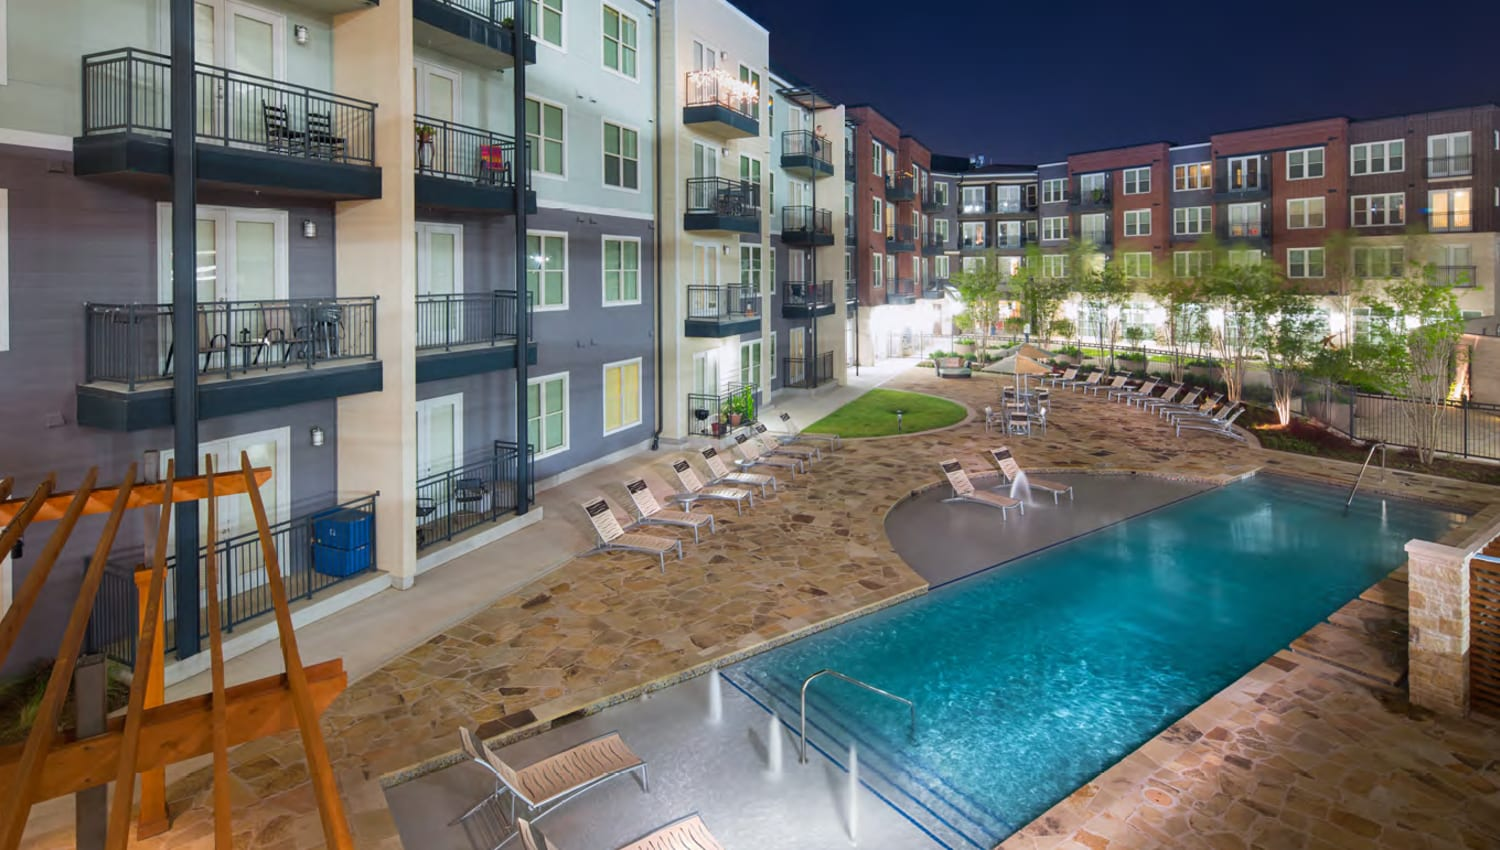 Outdoor swimming pool under the stars at Union At Carrollton Square in Carrollton, Texas